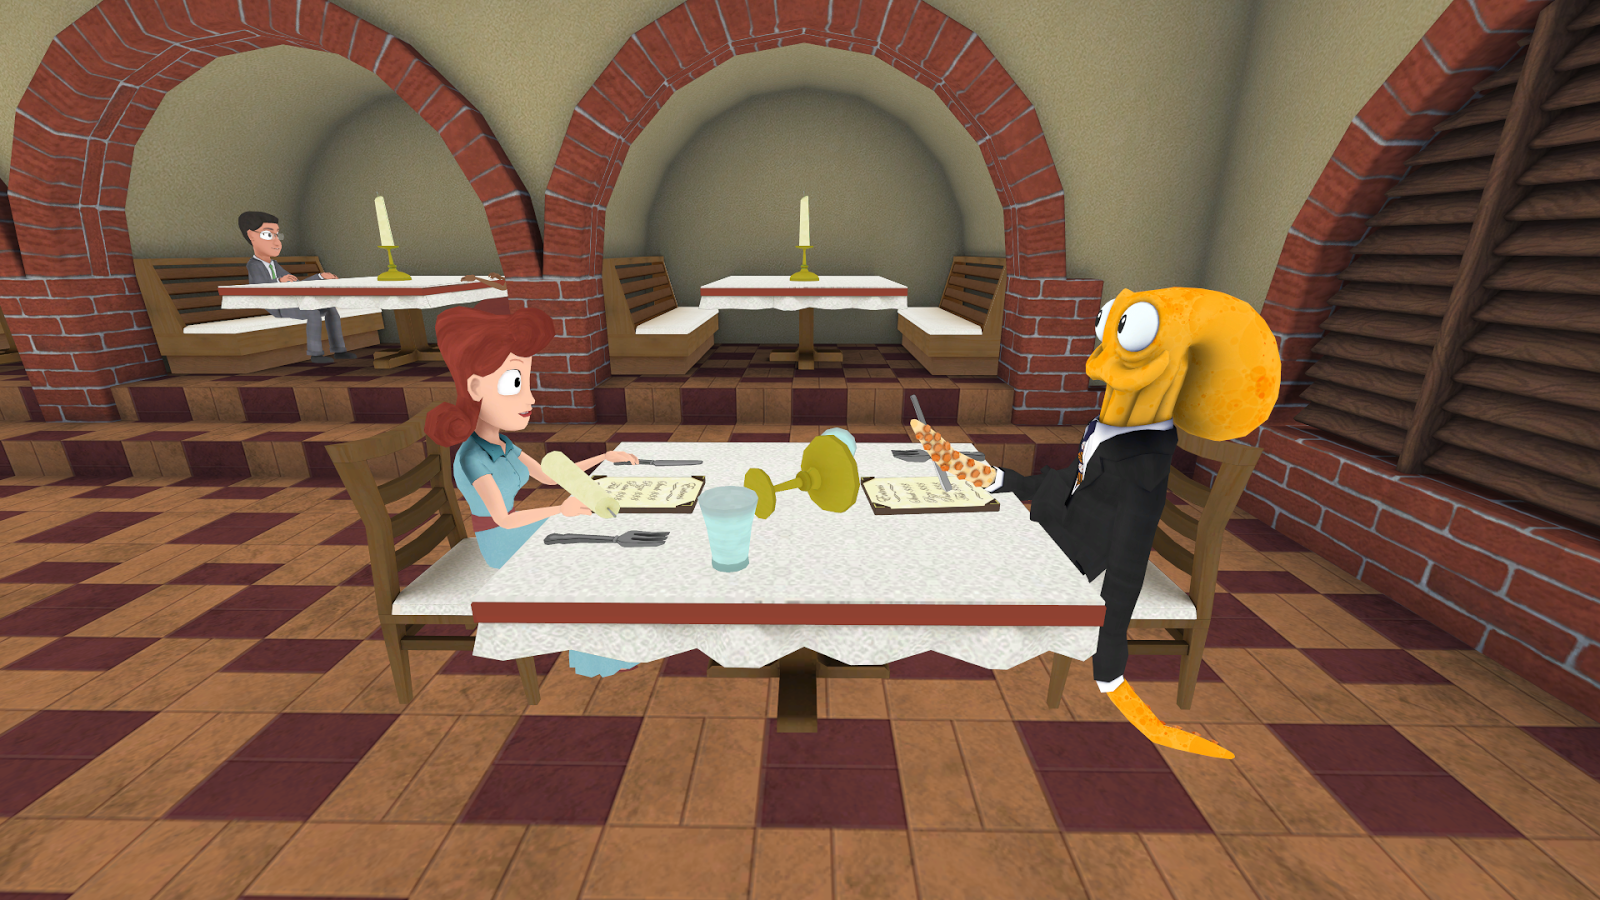 Octodad: Dadliest Catch Screenshot 0